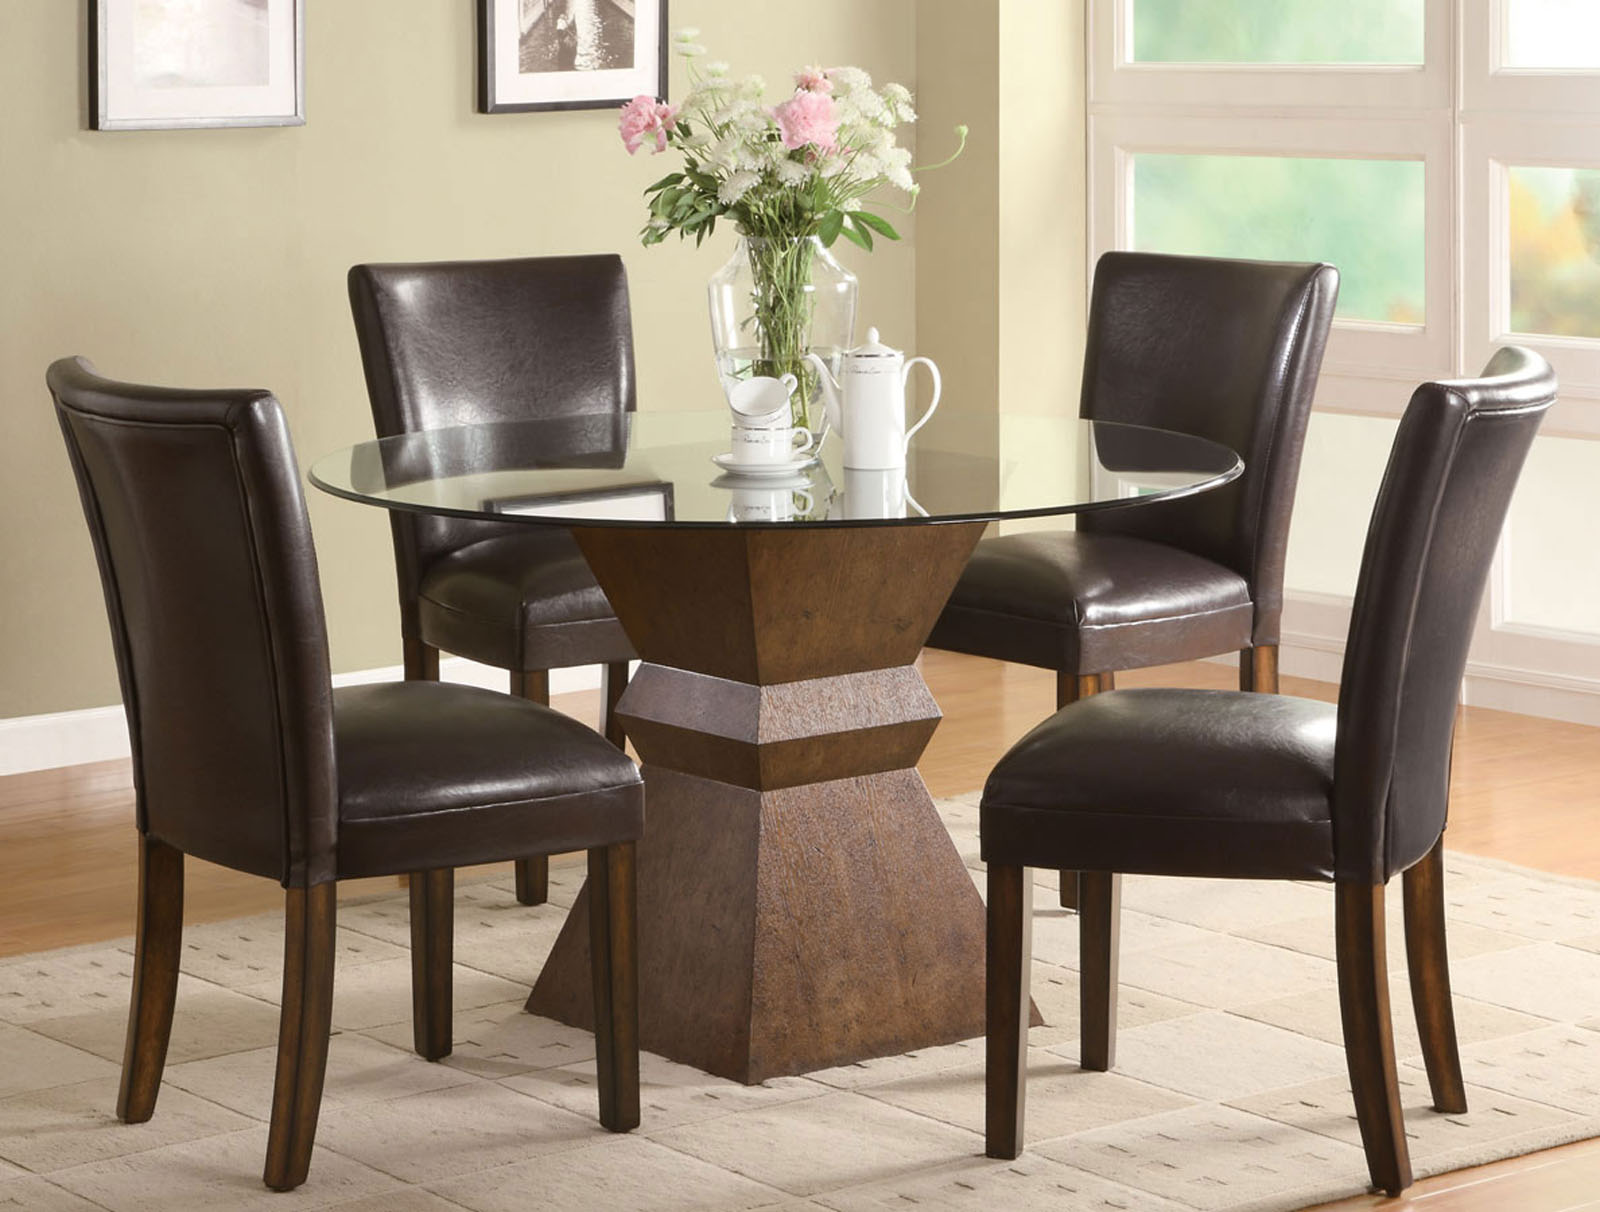 Round Glass Top for Small Kitchen Table inside Tiny Dining Area with Black Leather Chairs